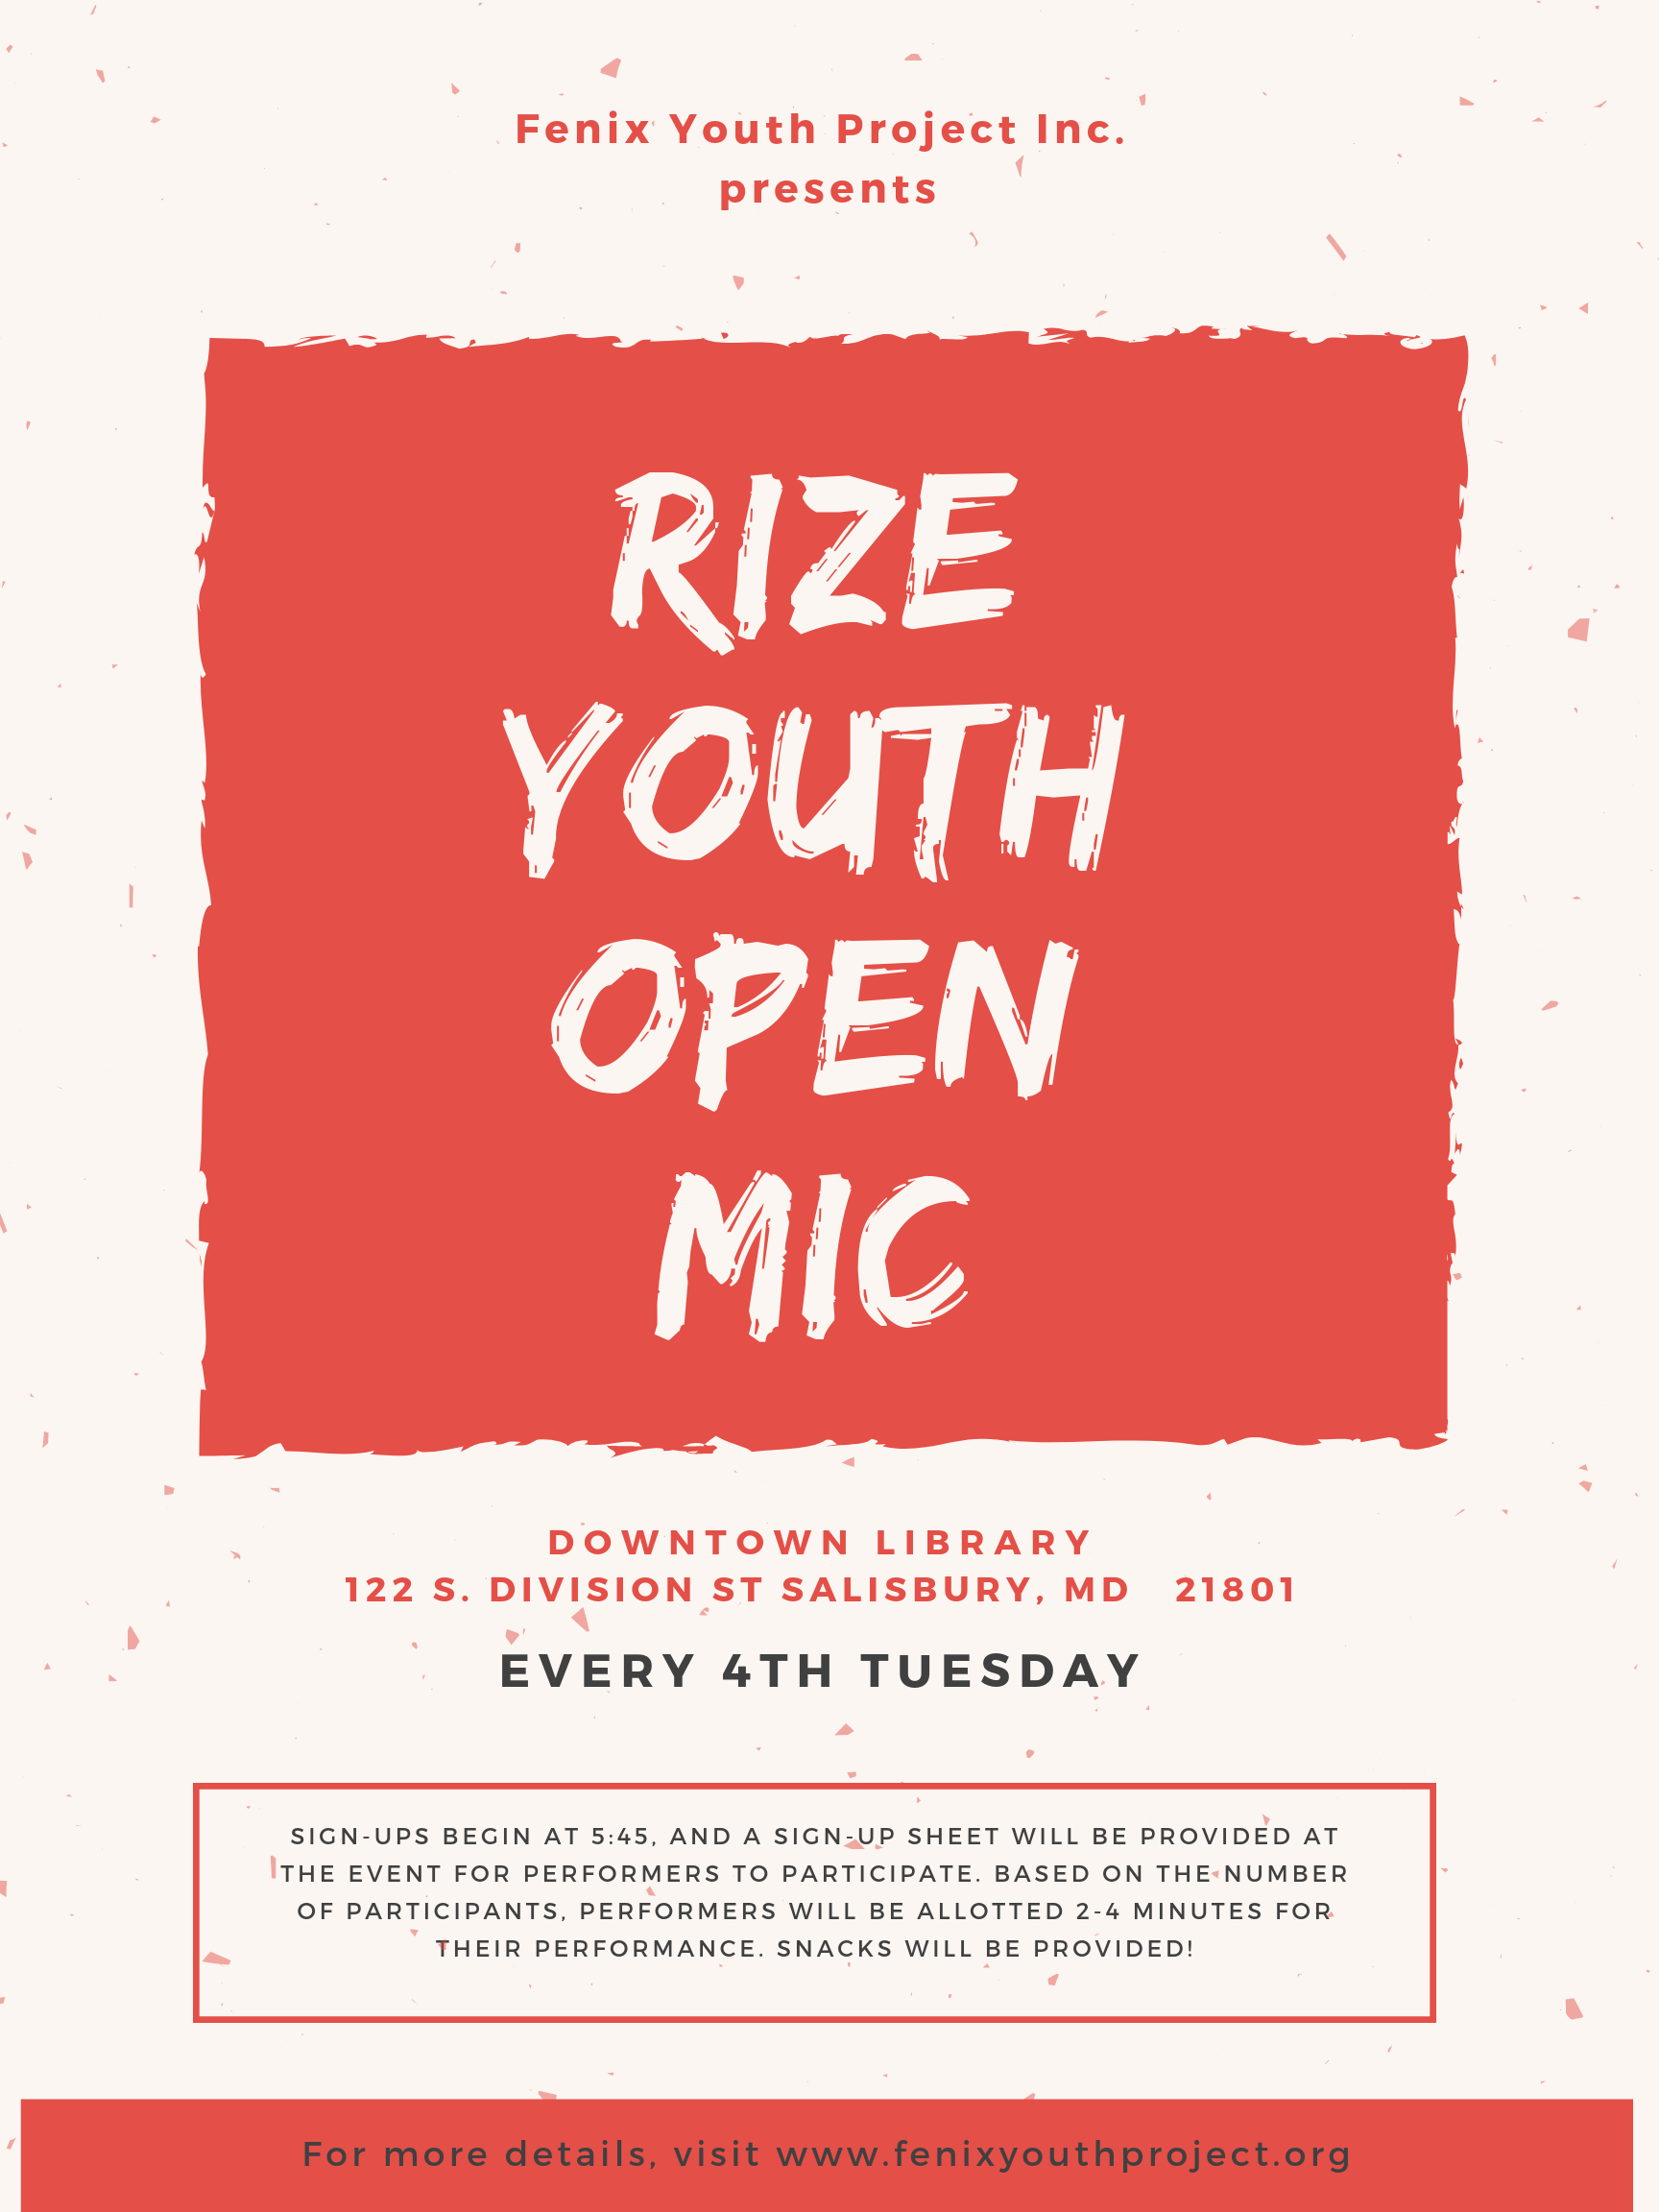 rize youth open mic.png